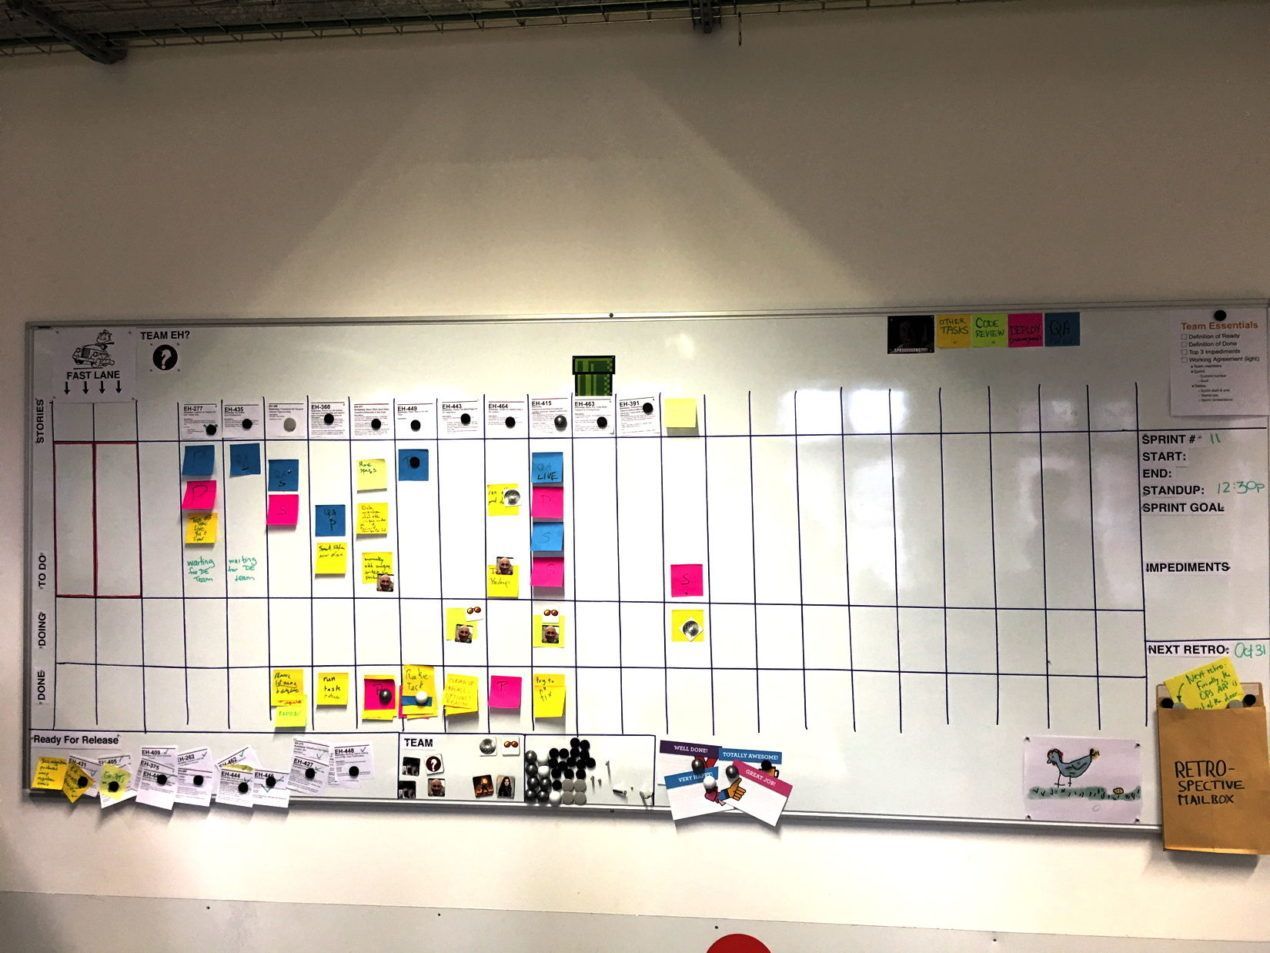 Turn A Wall Into A Whiteboard Create Whiteboards For Transparency And Collaboration Dzone Agile